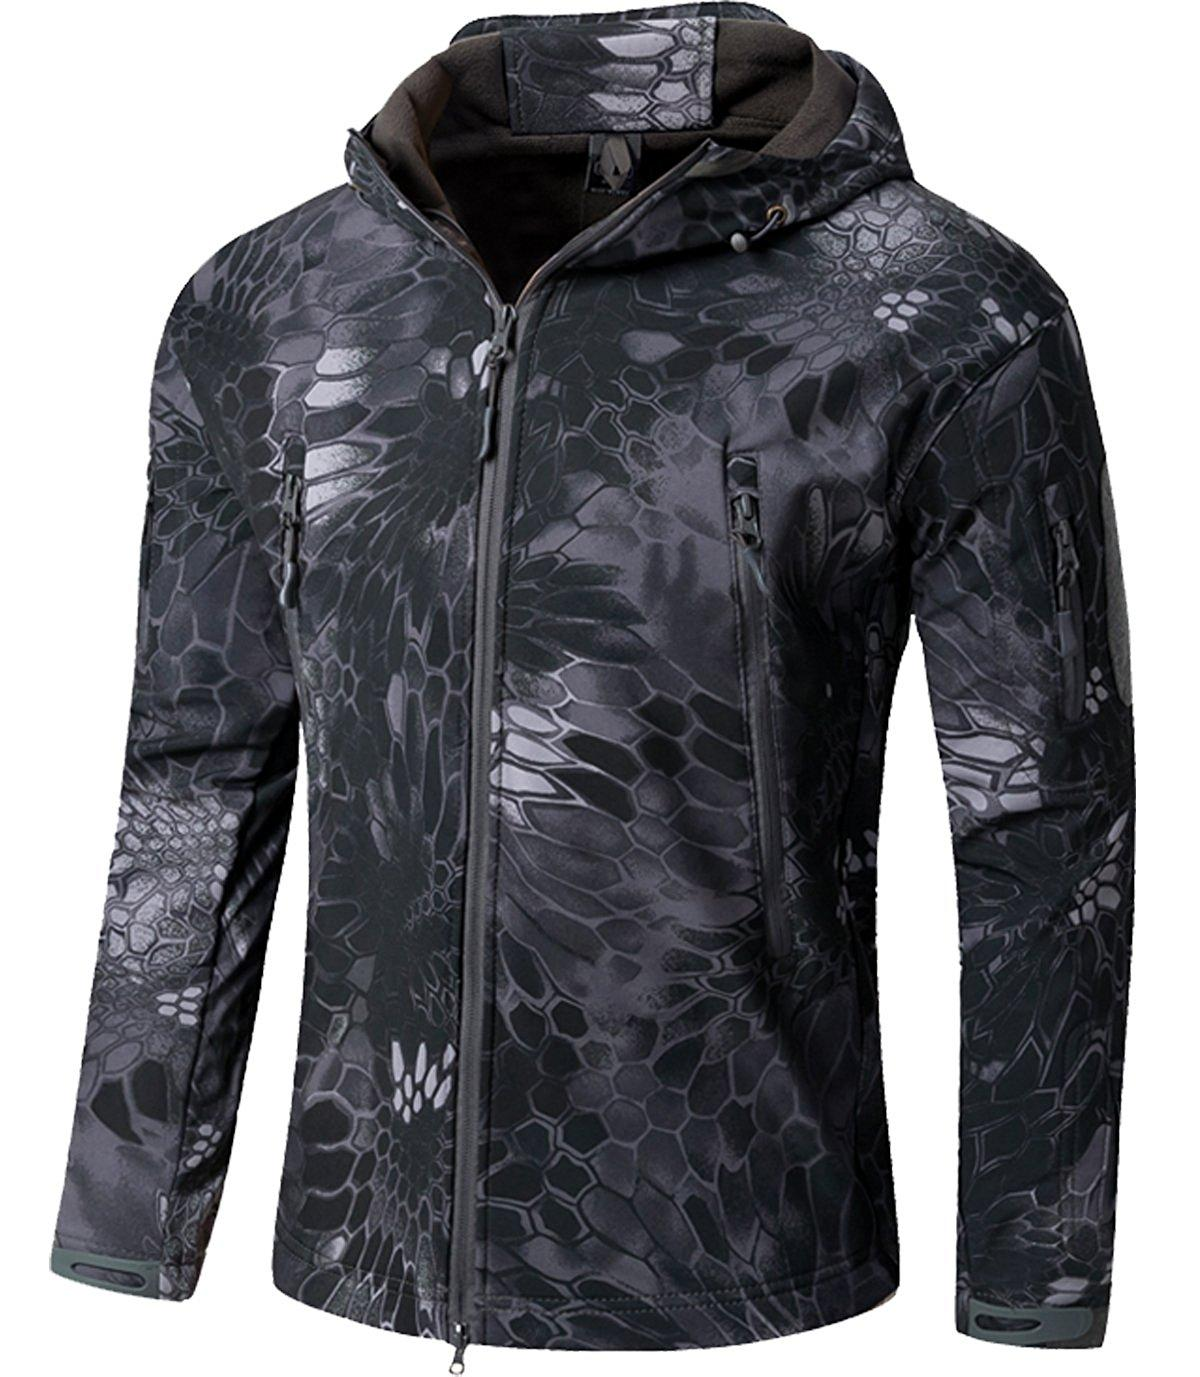 Shanghai Story Military Tactical Army Jacket TAD GEAR Soft SHELL Jacket Outdoor Hiking Coat Waterproof Windproof Jackets